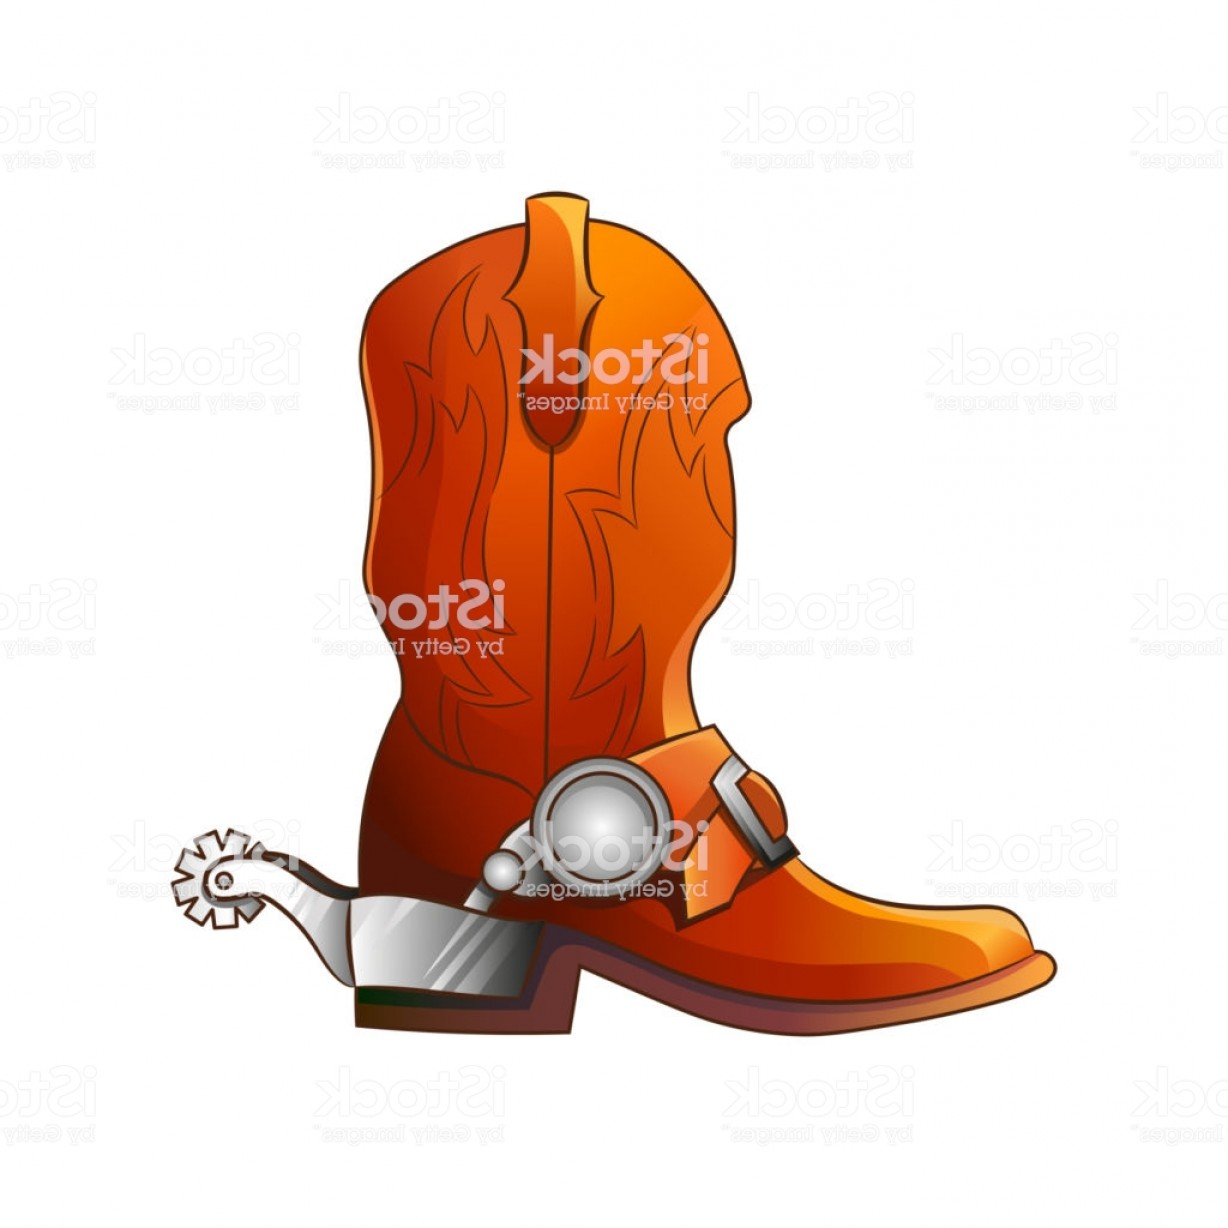 Spurs Clip Art Vector: Set Of Elements Of The Wild West The Equipment Of Cowboys Boots With Spurs Vector Gm